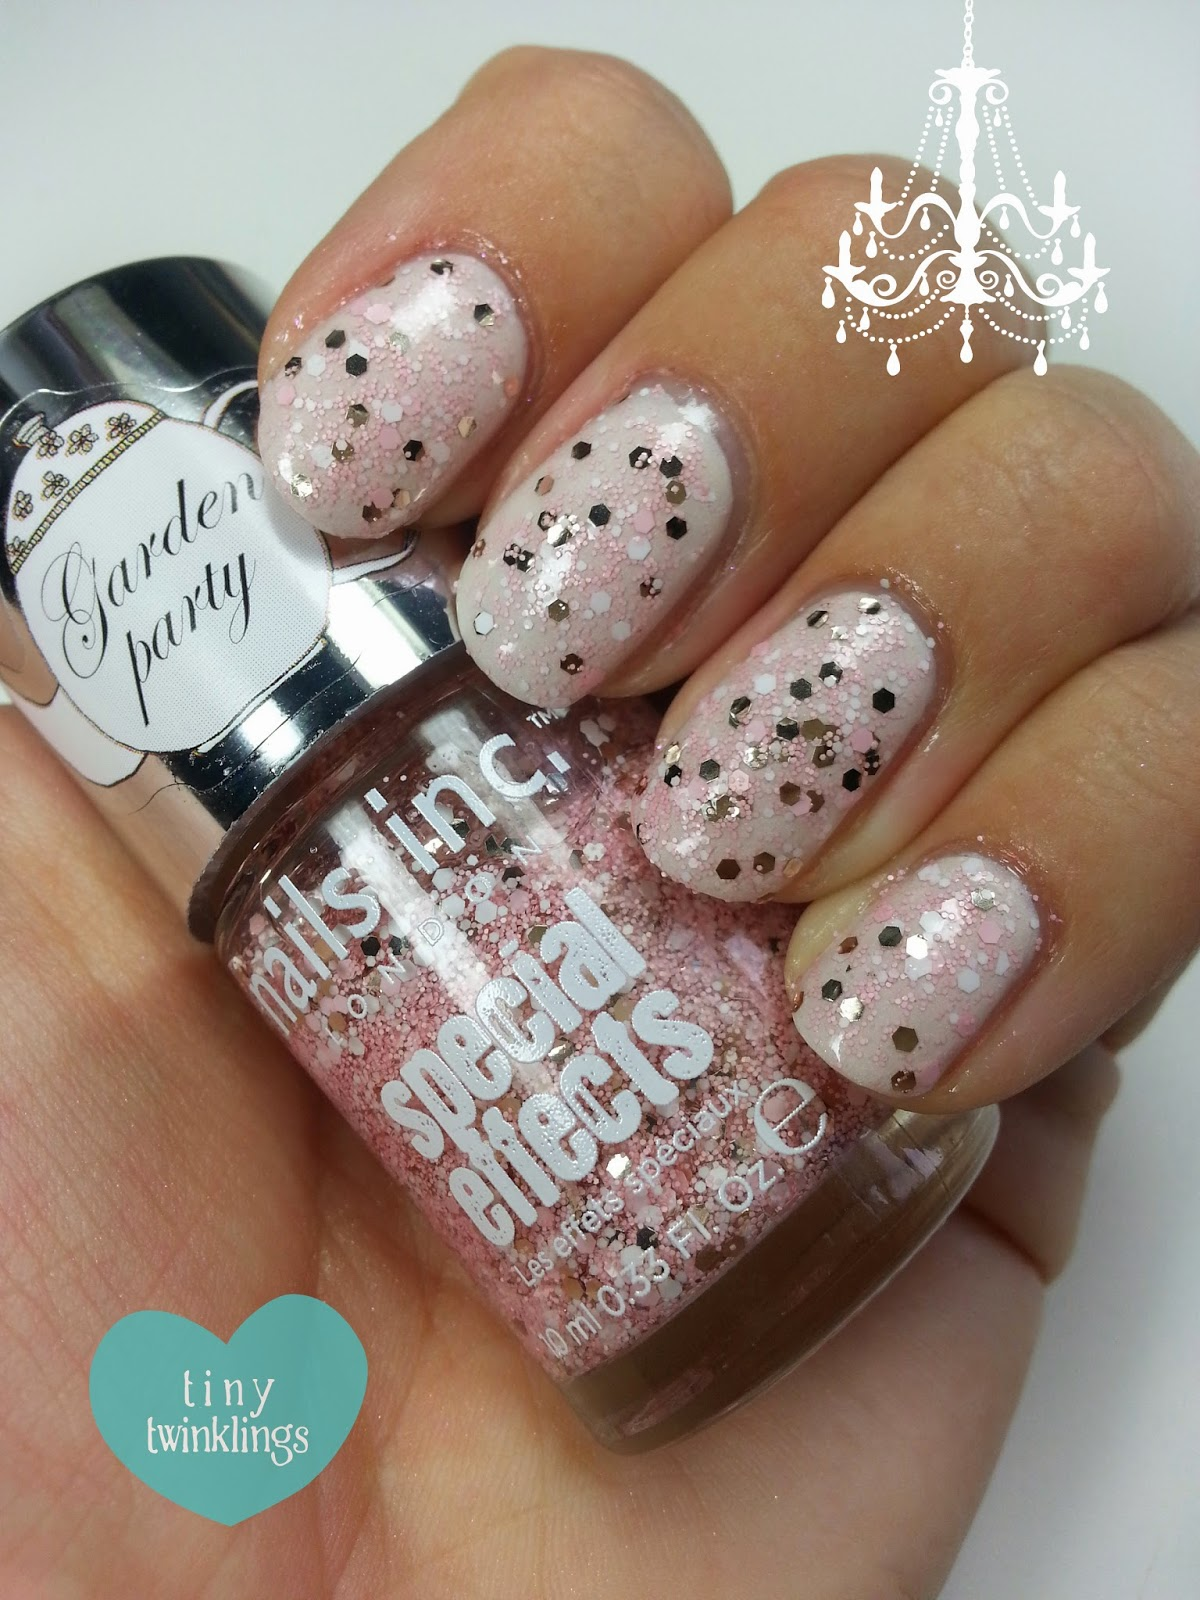 tiny twinklings nails inc ballet sheers